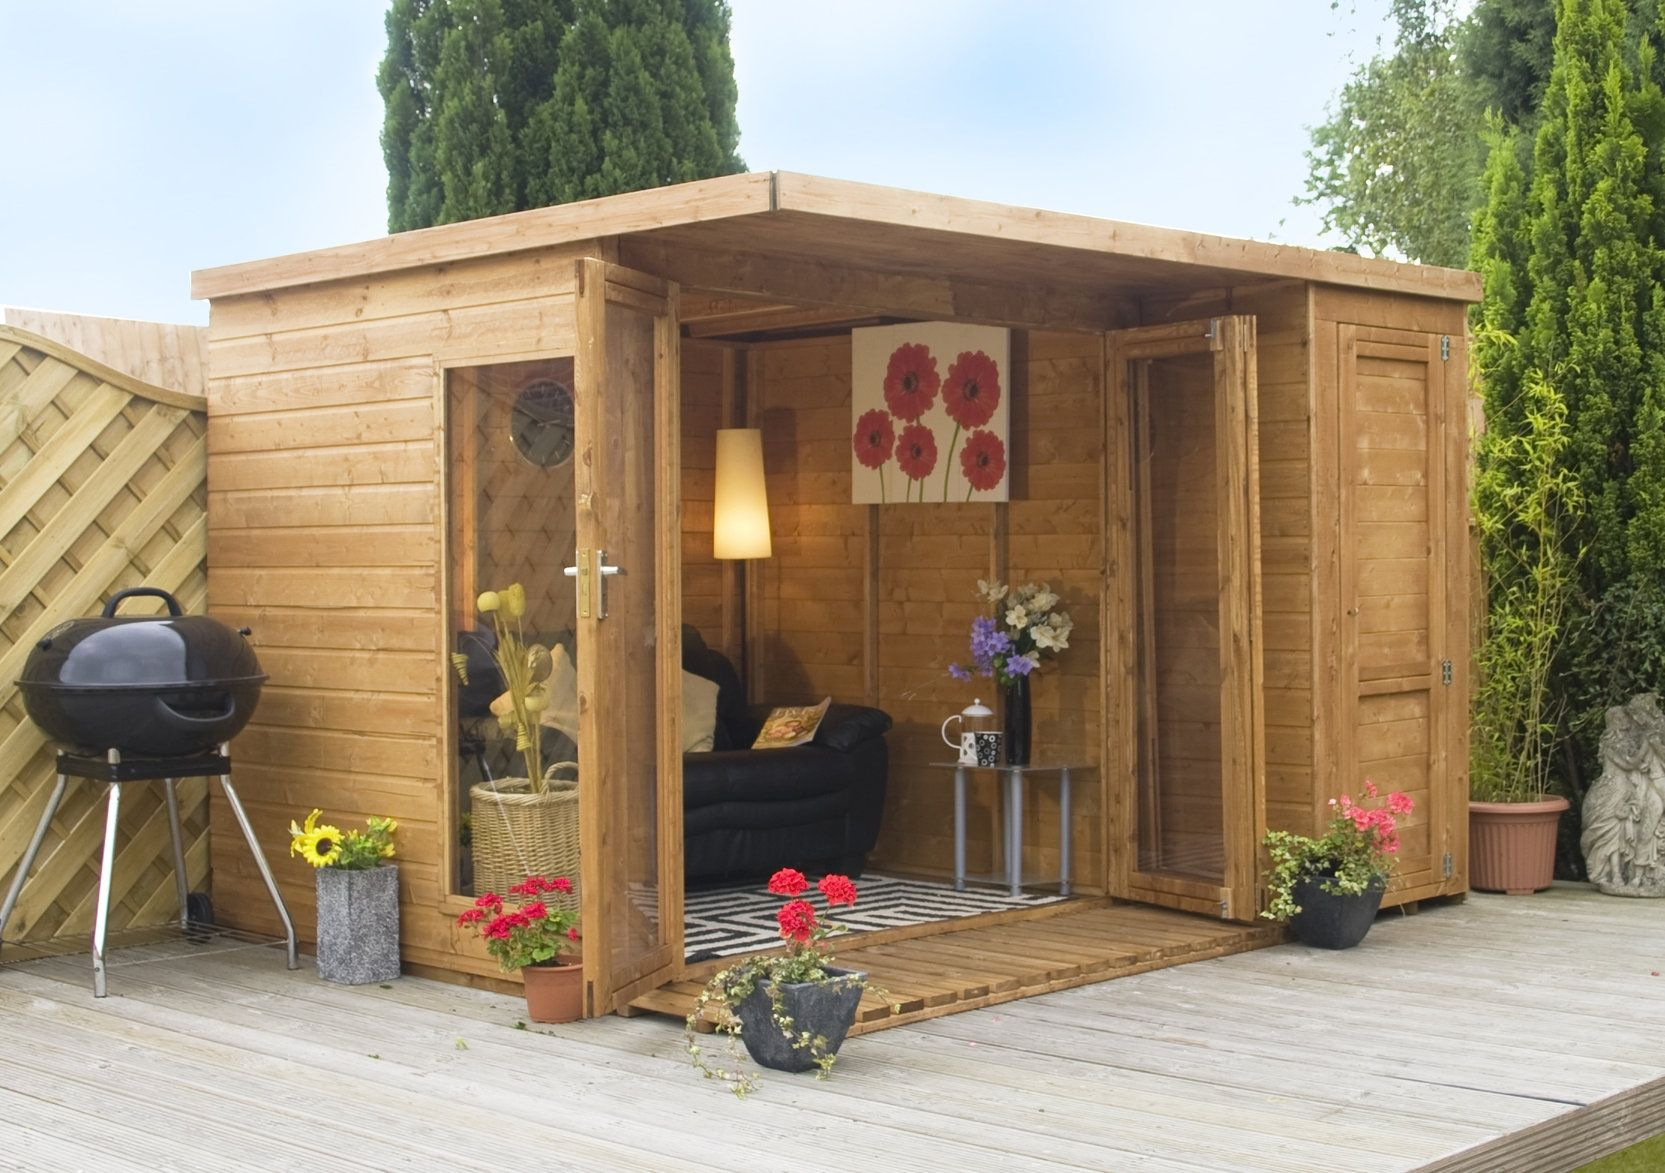 Best 10 Metal sheds uk ideas on Pinterest Garden sheds uk Diy